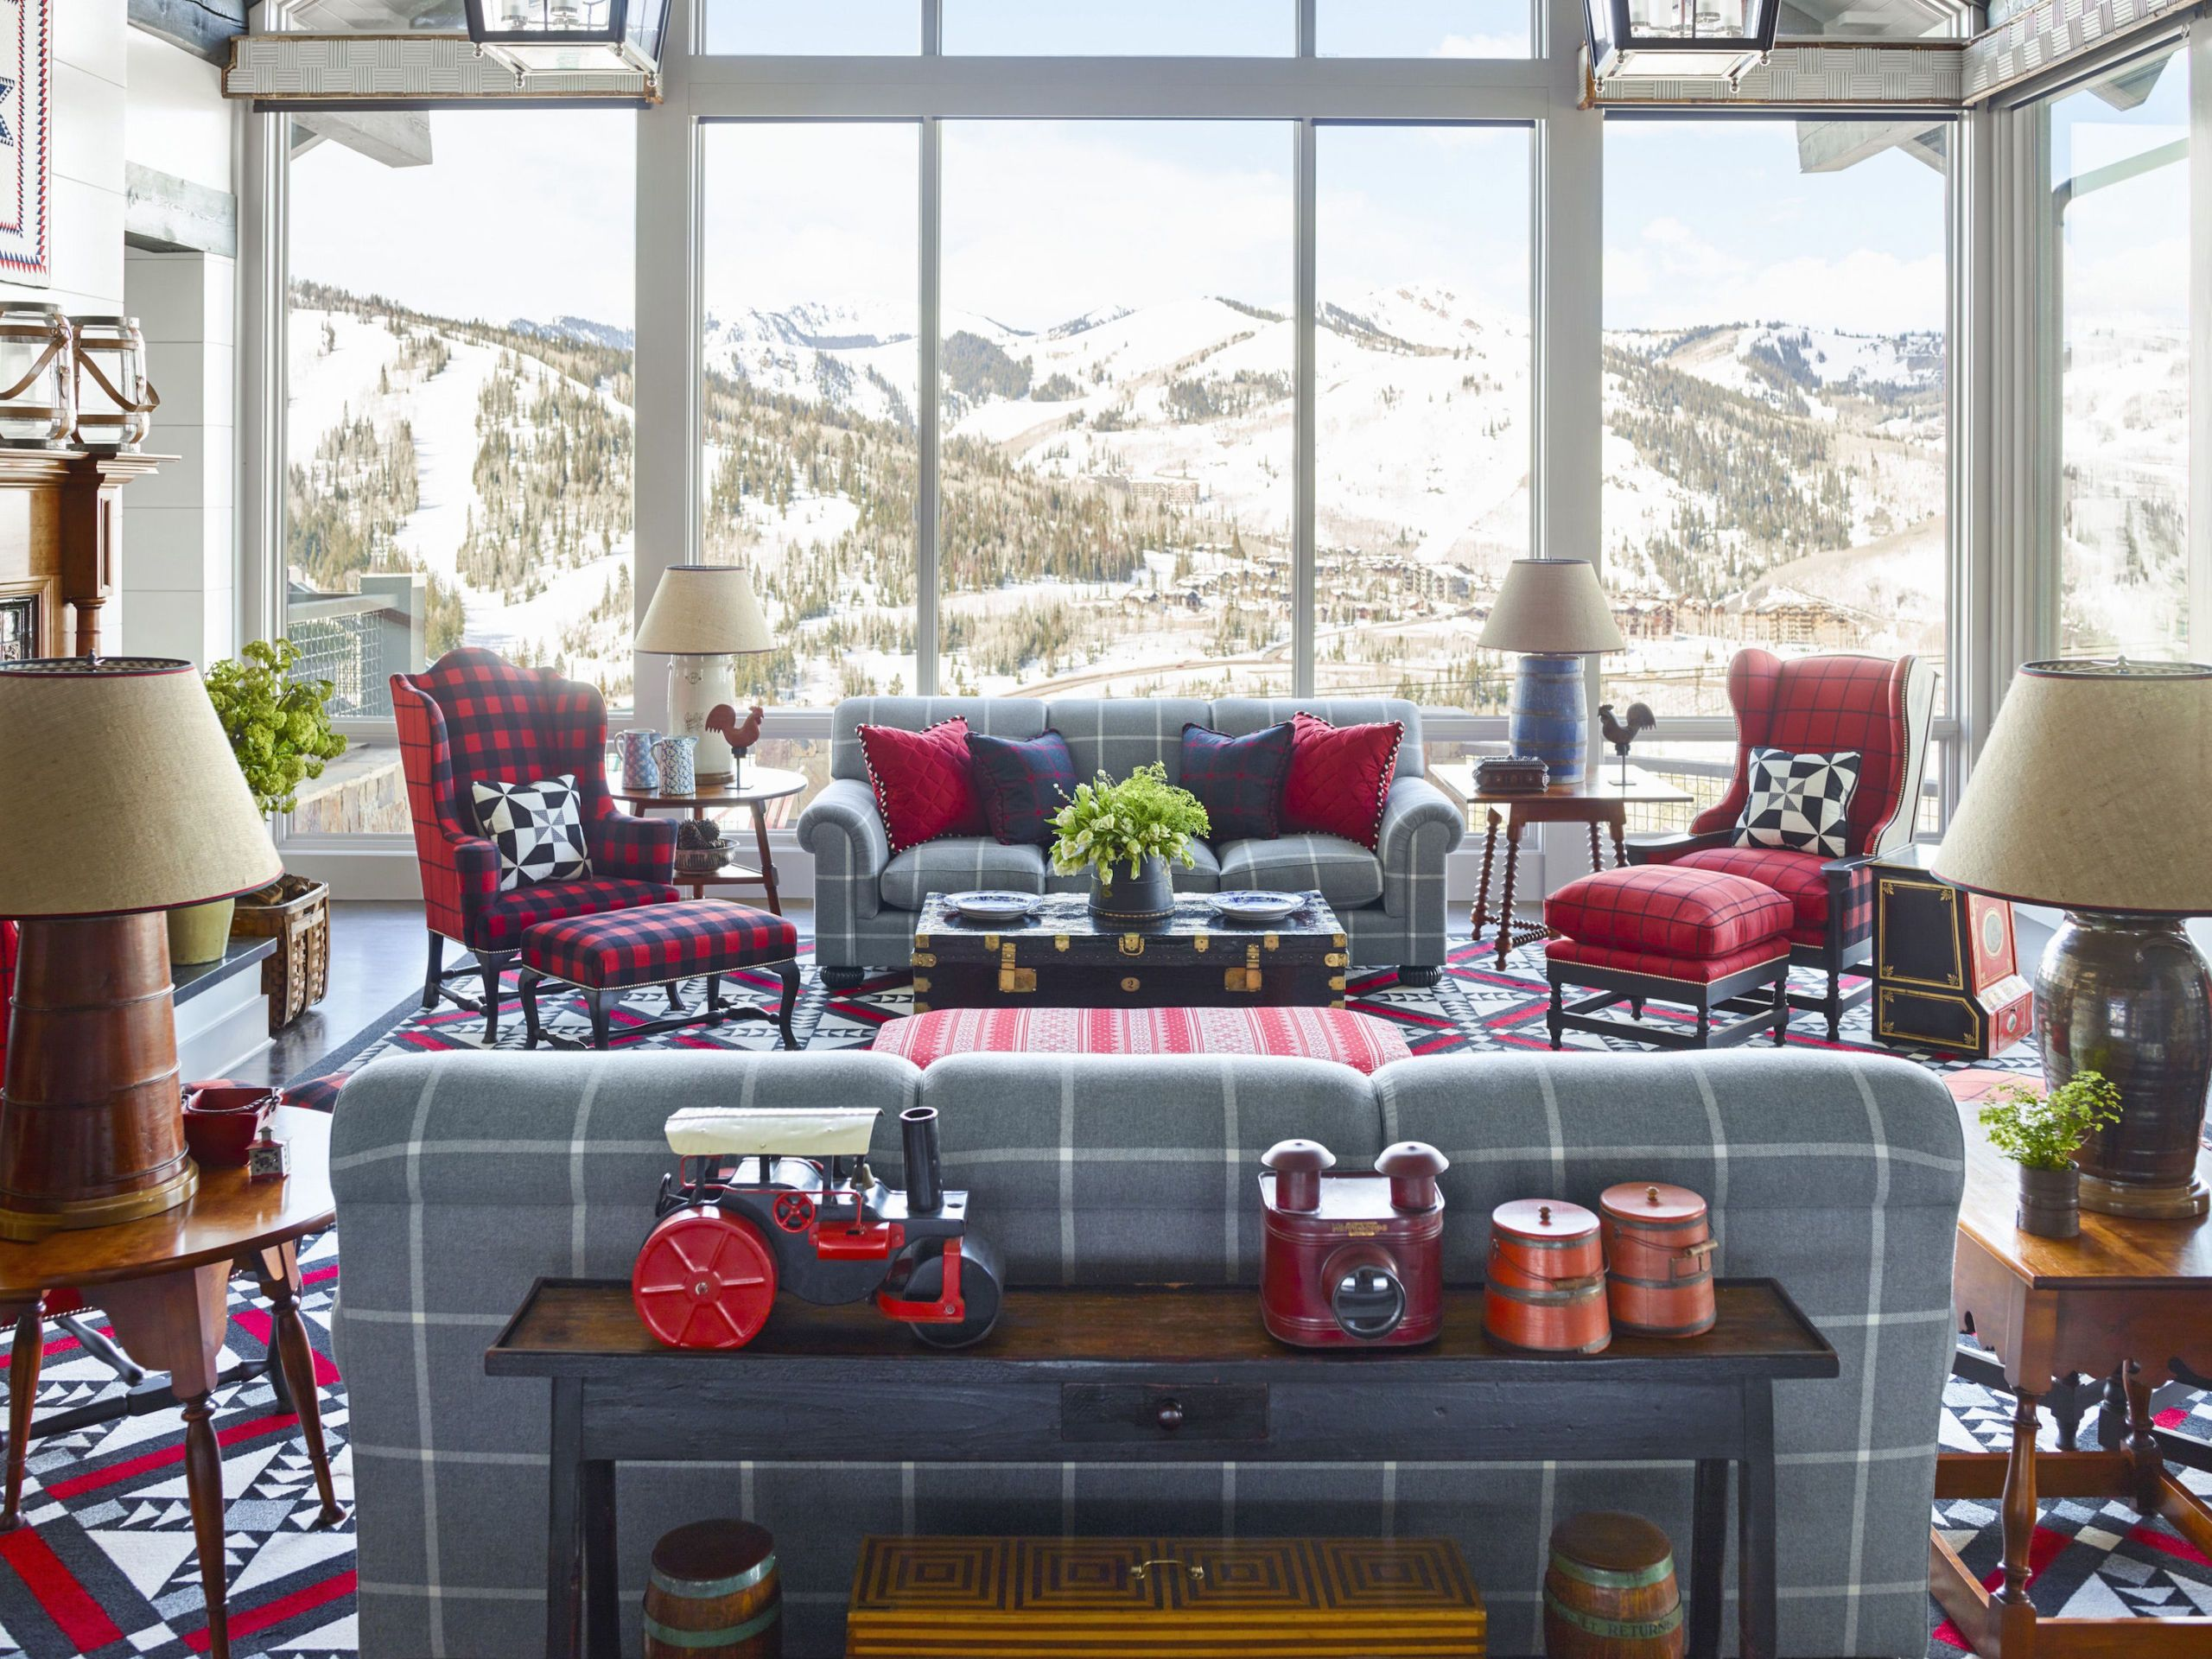 HOUSE TOUR: A Delightful Utah Mountain House Full Of Playful Patterns